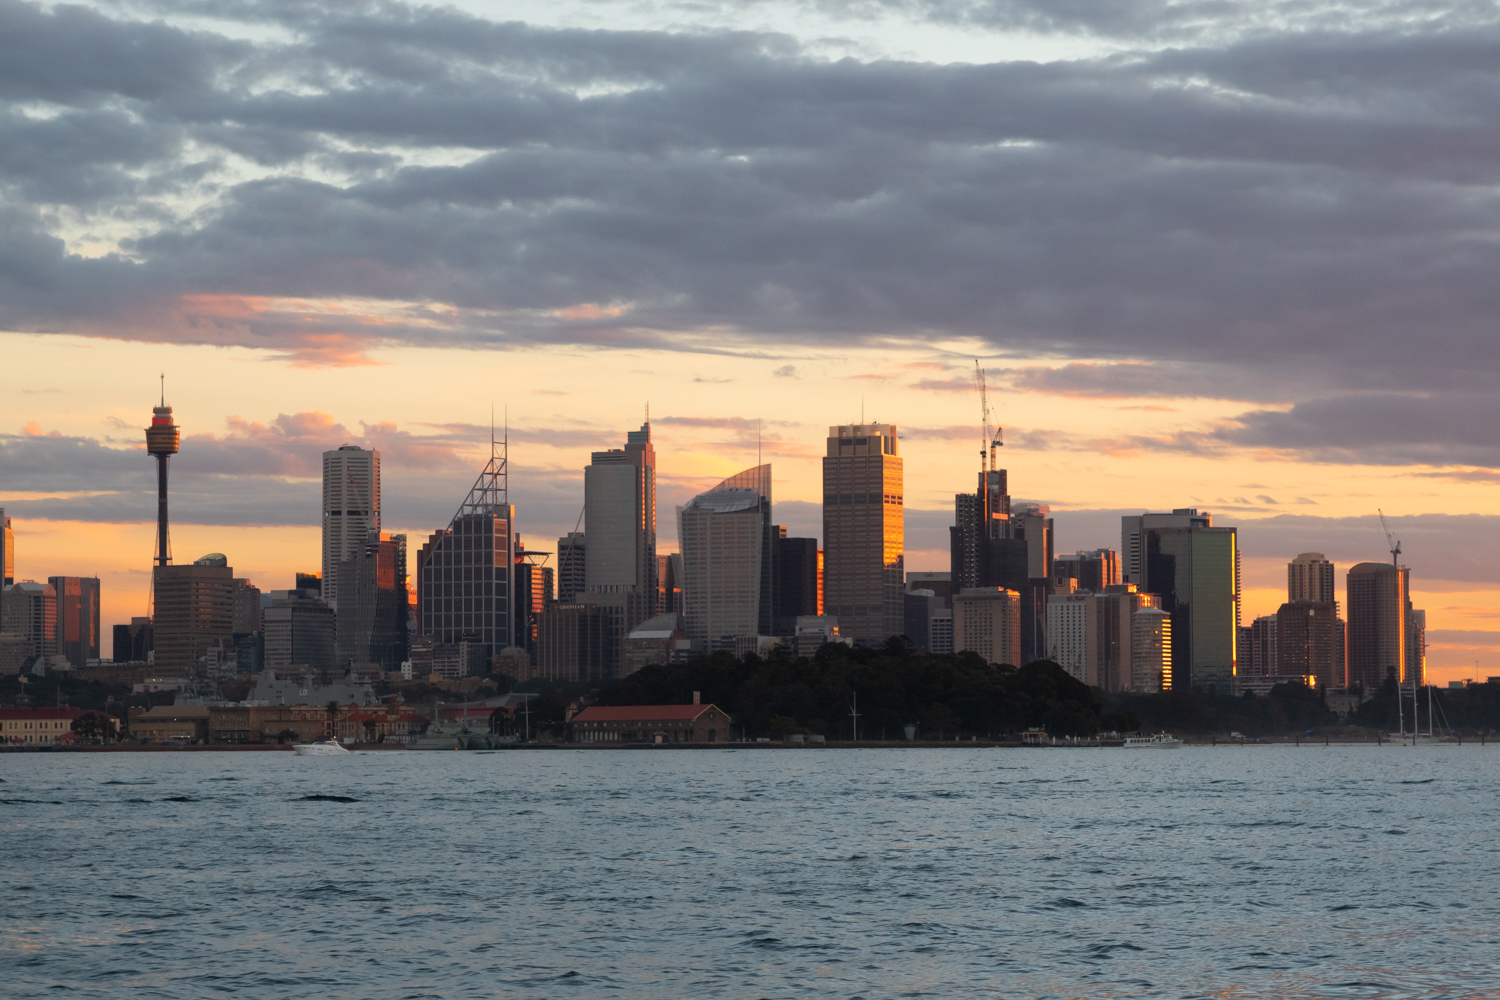 Sydney City from the Harbour